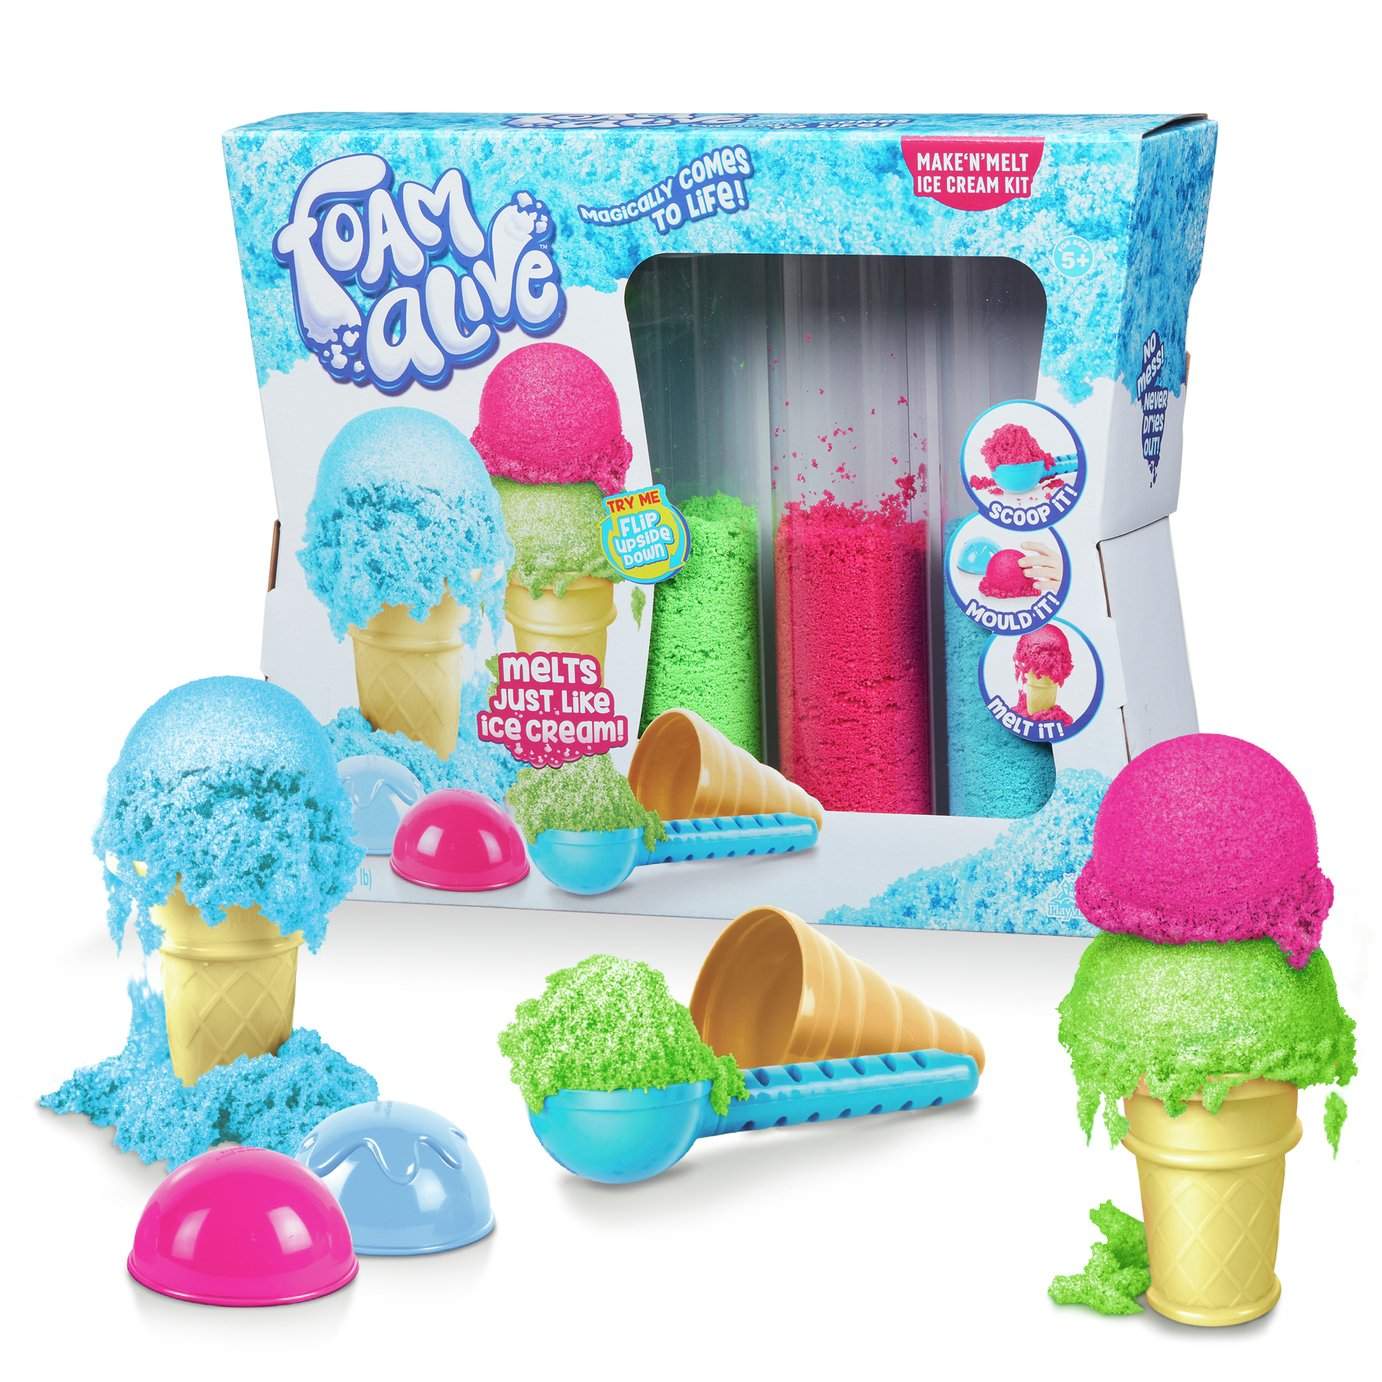 Foam Alive Make 'N' Melt Ice Cream Kit